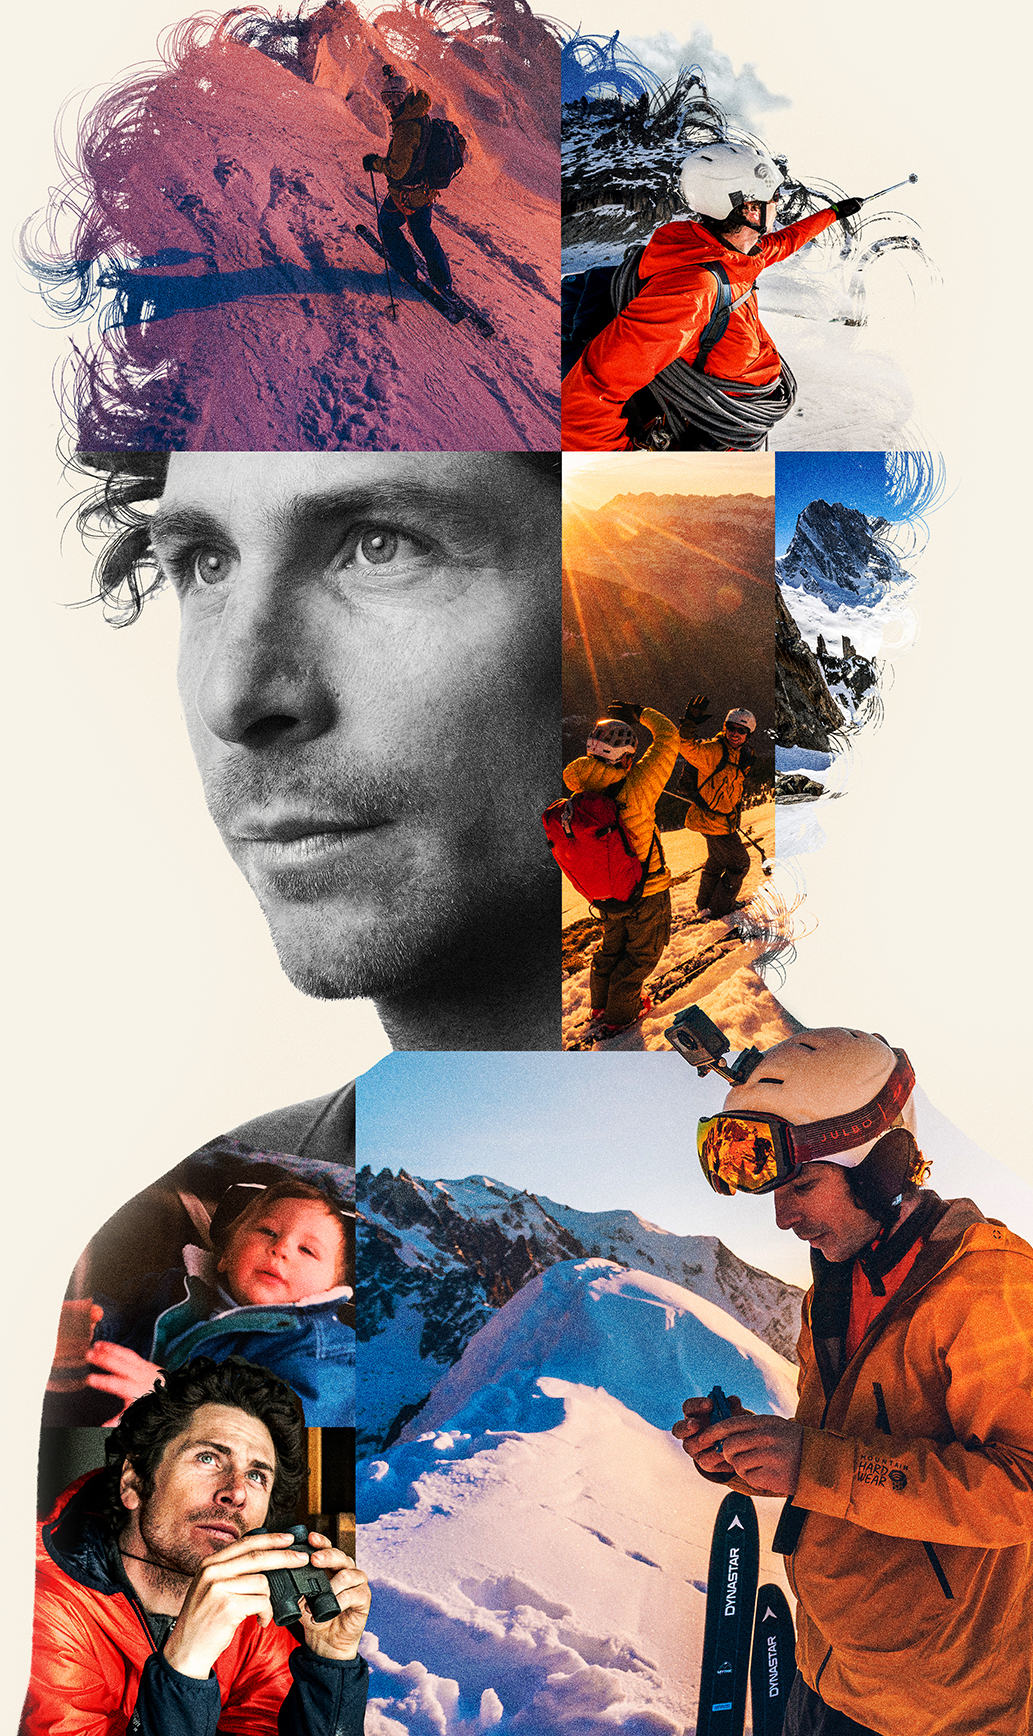 portrait of Vivian Bruchez with a compilation of images of Viv skiing.